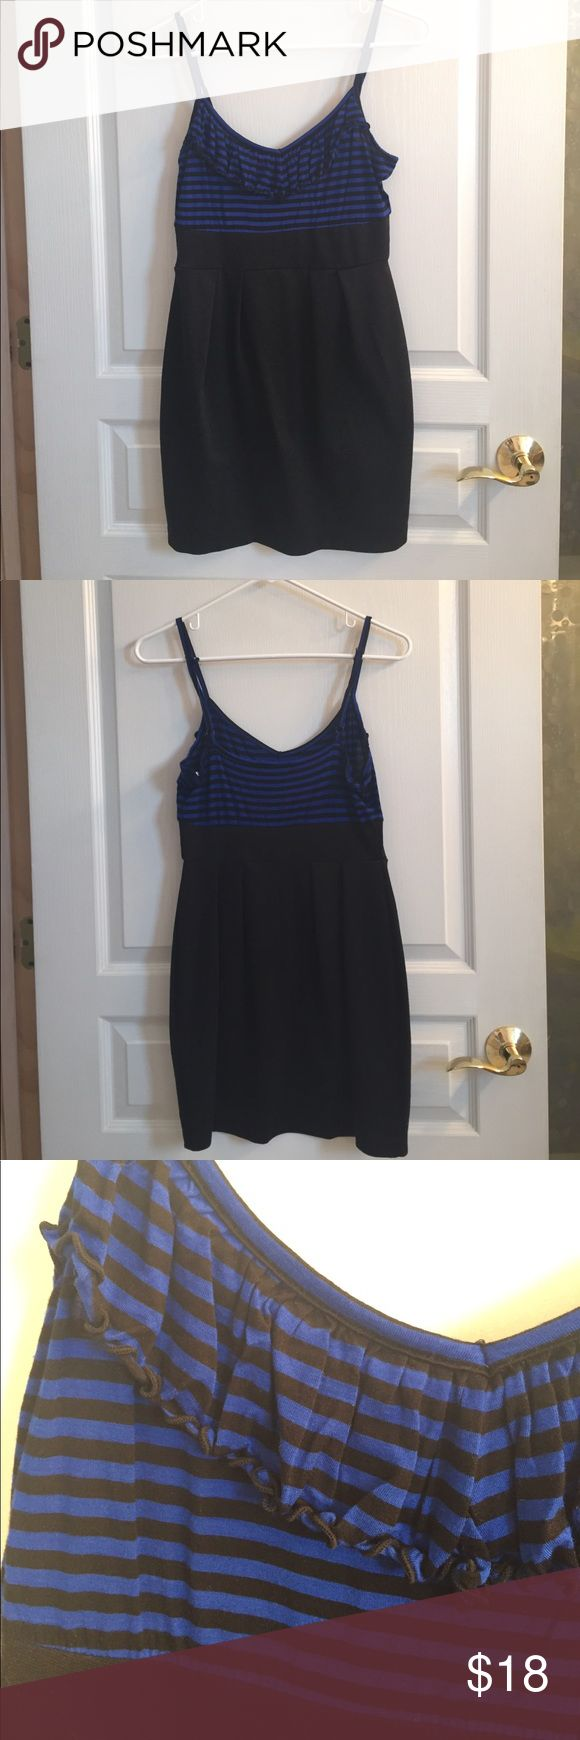 Cute mini going out dress! Very comfortable 👌🏽 This dress is adorable with the black and blue striped top with ruffle, and flattering skirt below. Very comfortable material, you'll have a great time in this cute piece! In perfect condition! The straps are adjustable 👍🏽 If you have any questions, please ask. Feel free to make an offer. Thanks :) Forever 21 Dresses Mini